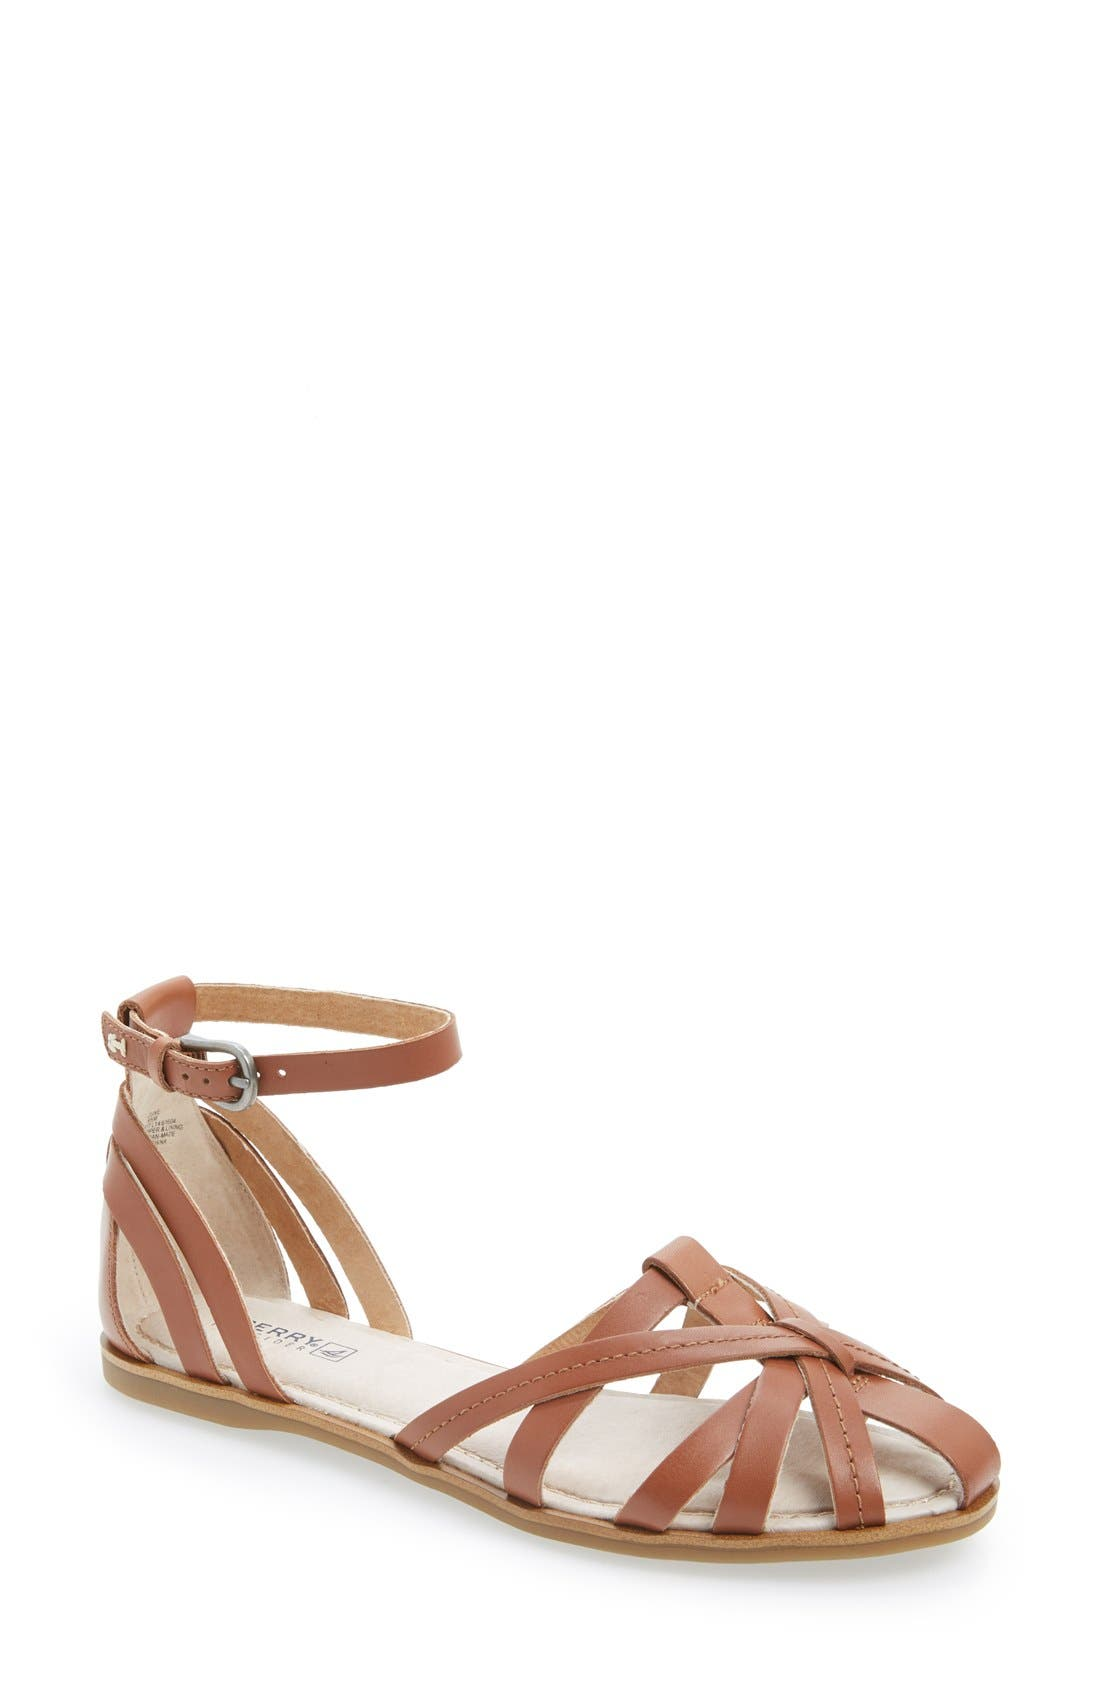 Main Image - Sperry 'June' Leather Ankle Strap Sandal (Women)